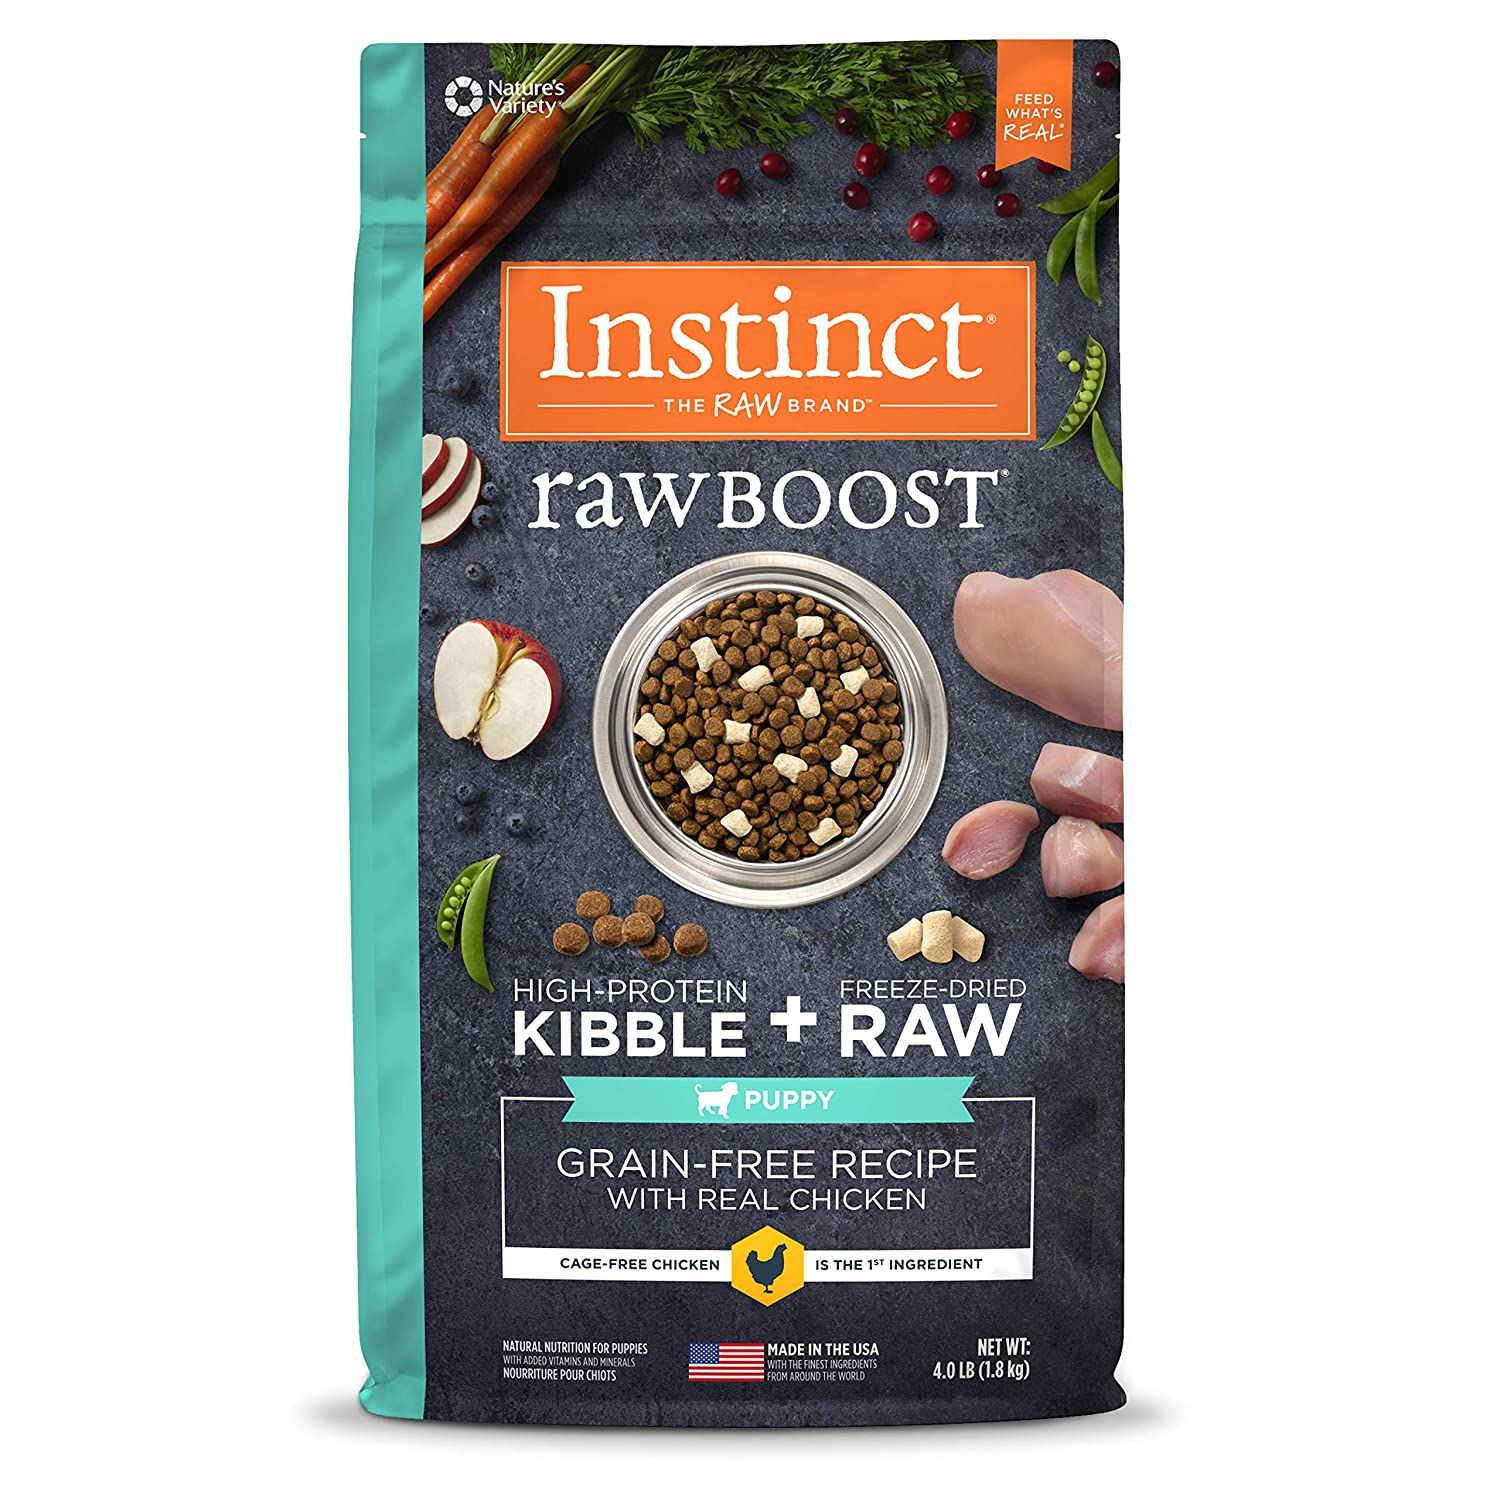 4. Instinct by Nature's Variety Raw Boost Puppy